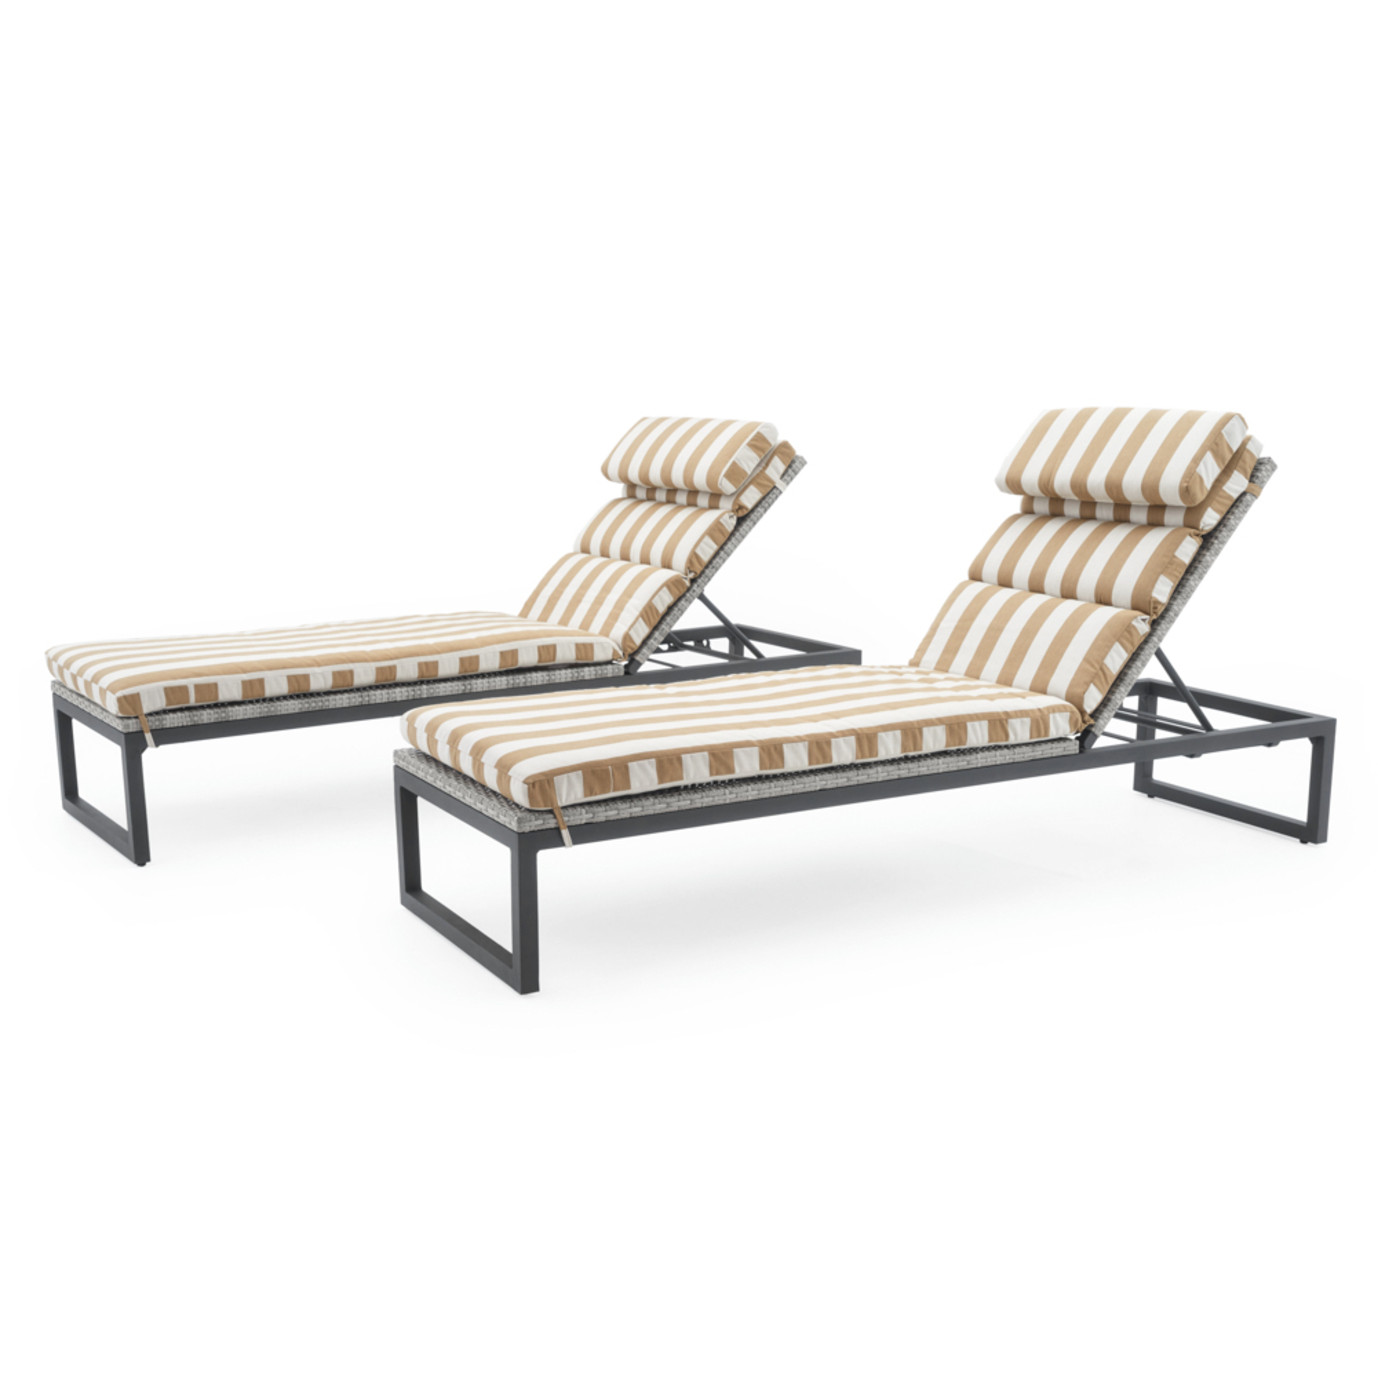 Milo™ Gray Chaise Lounges - Maxim Beige